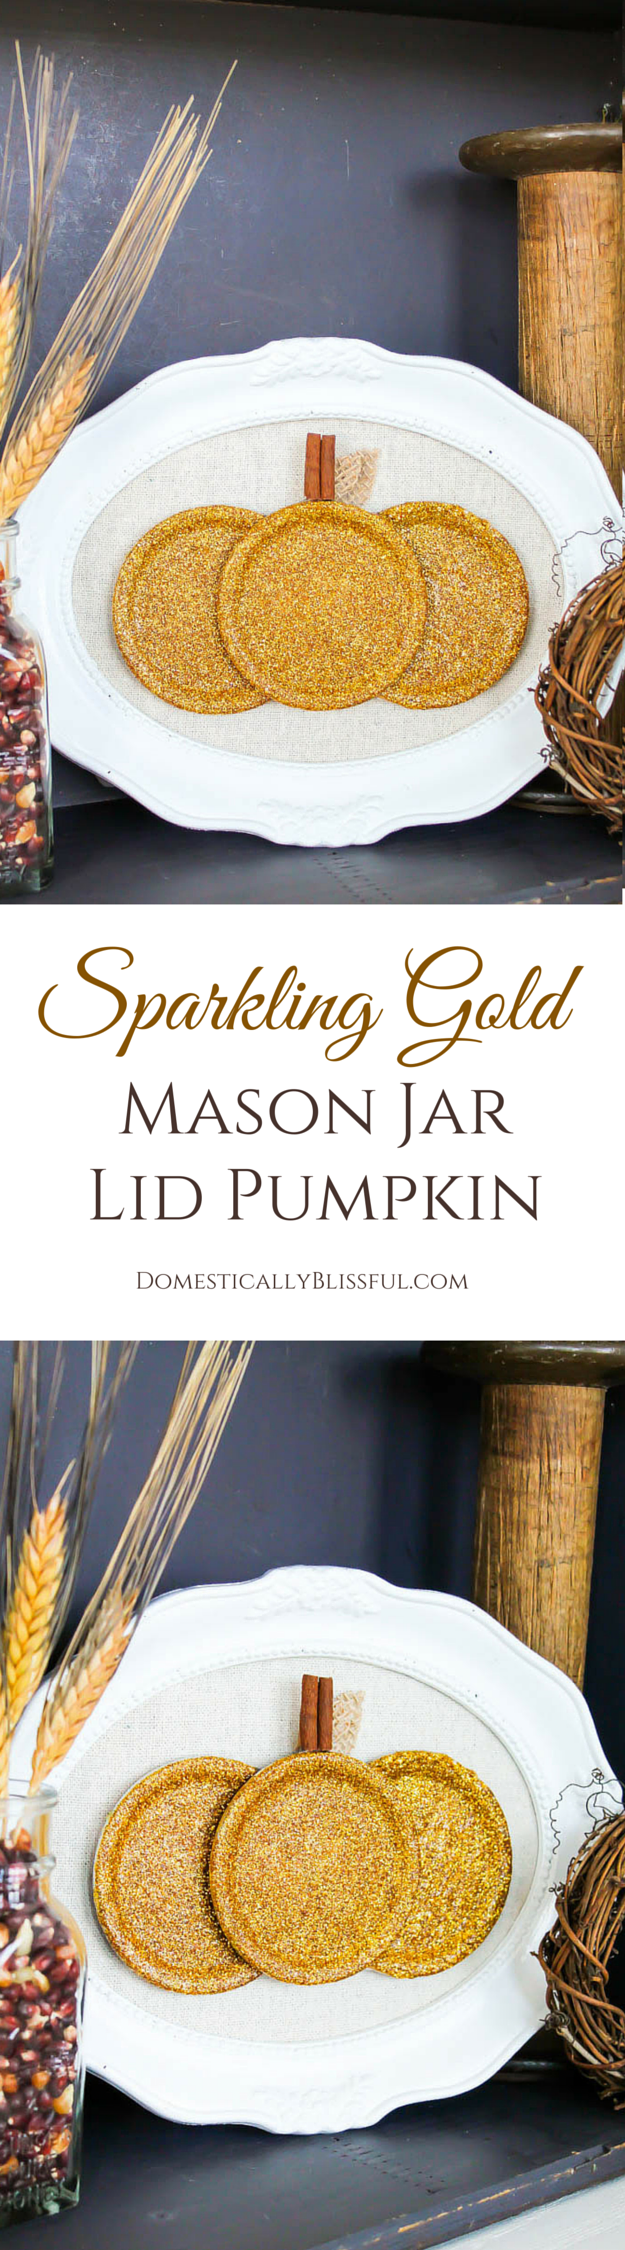 Sparkling Gold Mason Jar Lid Pumpkin tutorial by Domestically Blissful